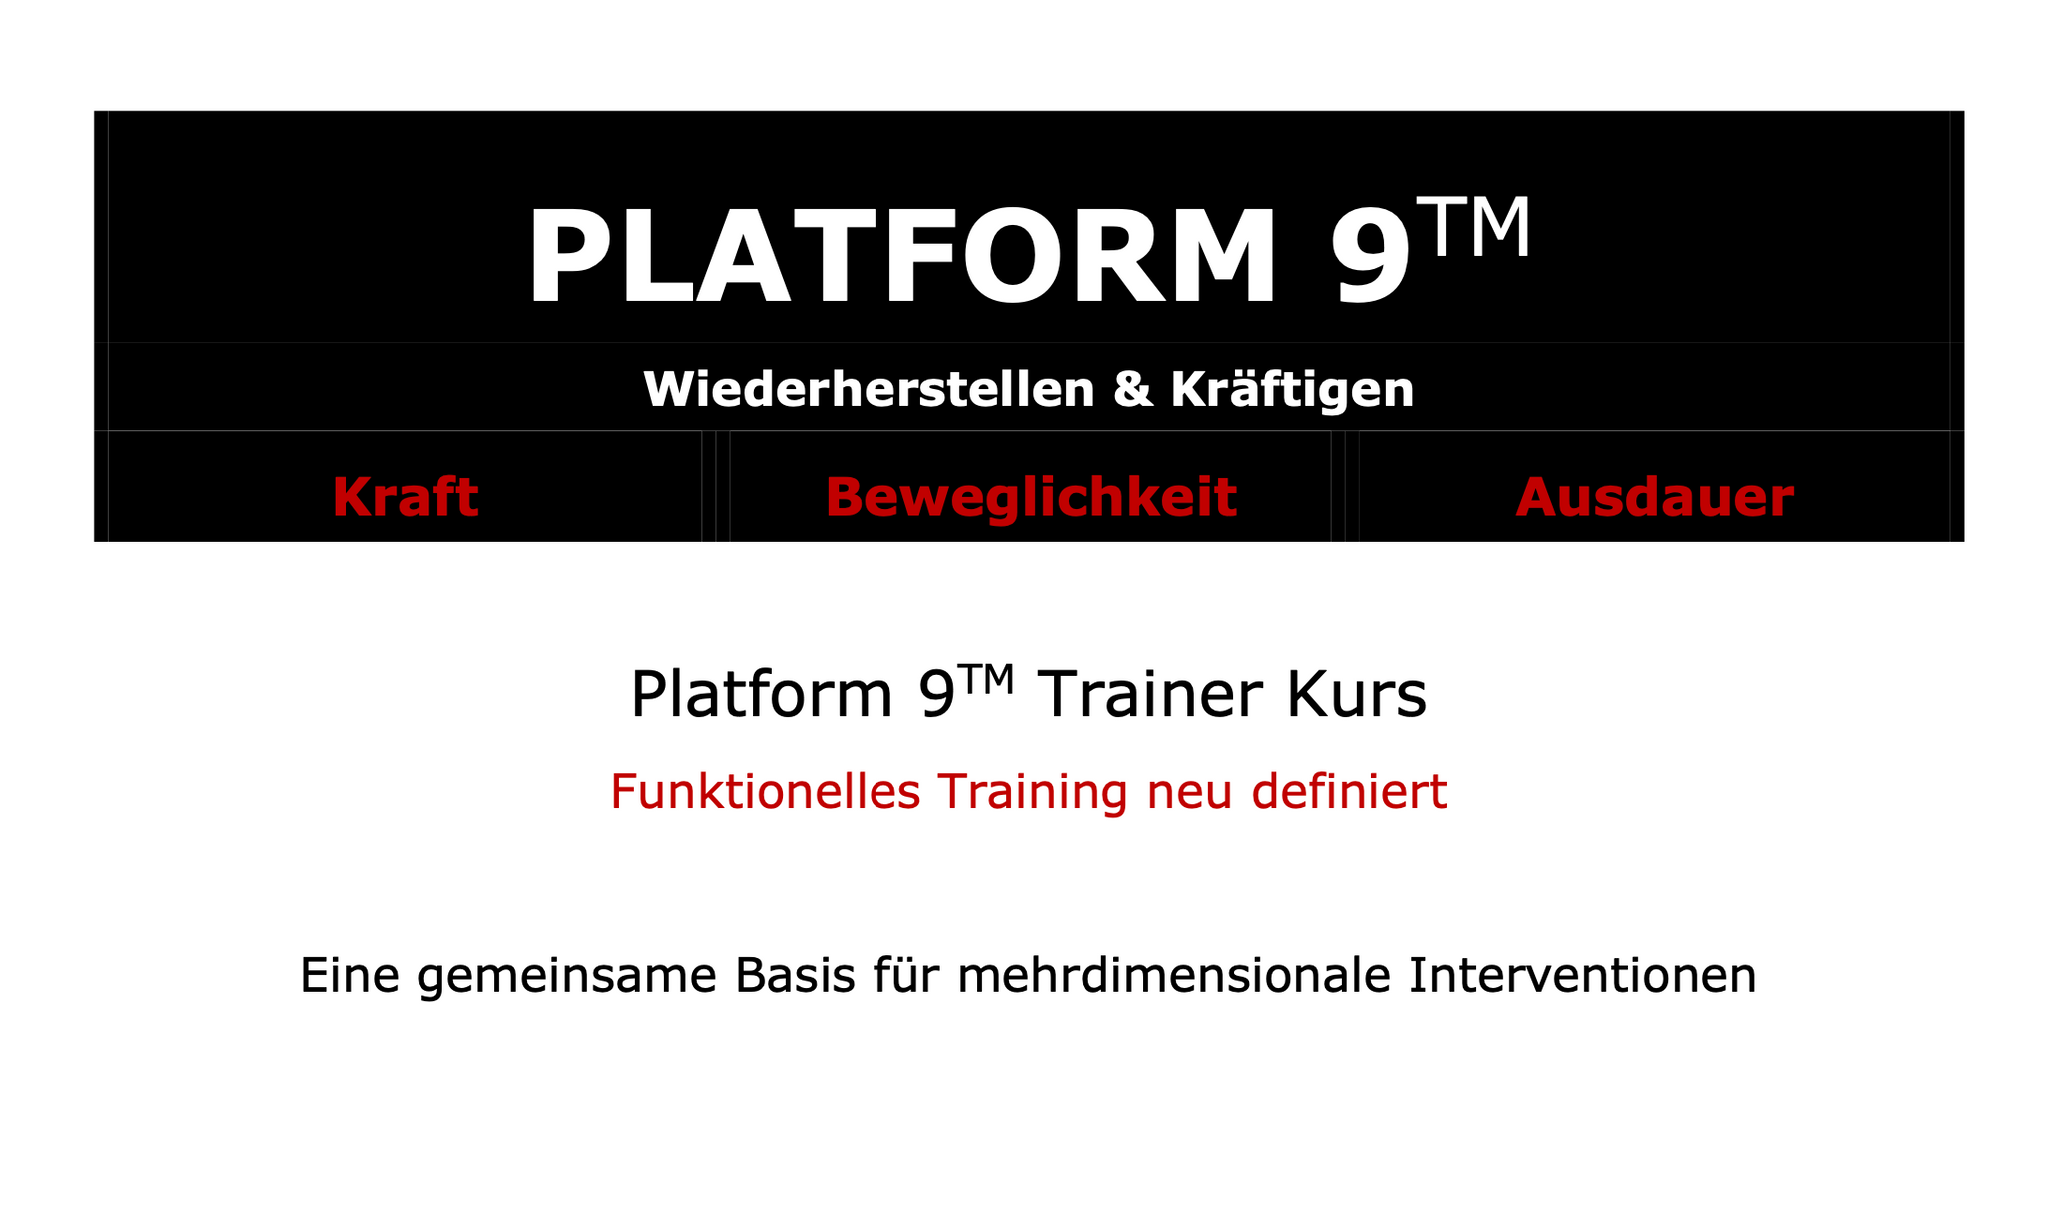 Procedos Platform 9TM Trainer Kurs information.